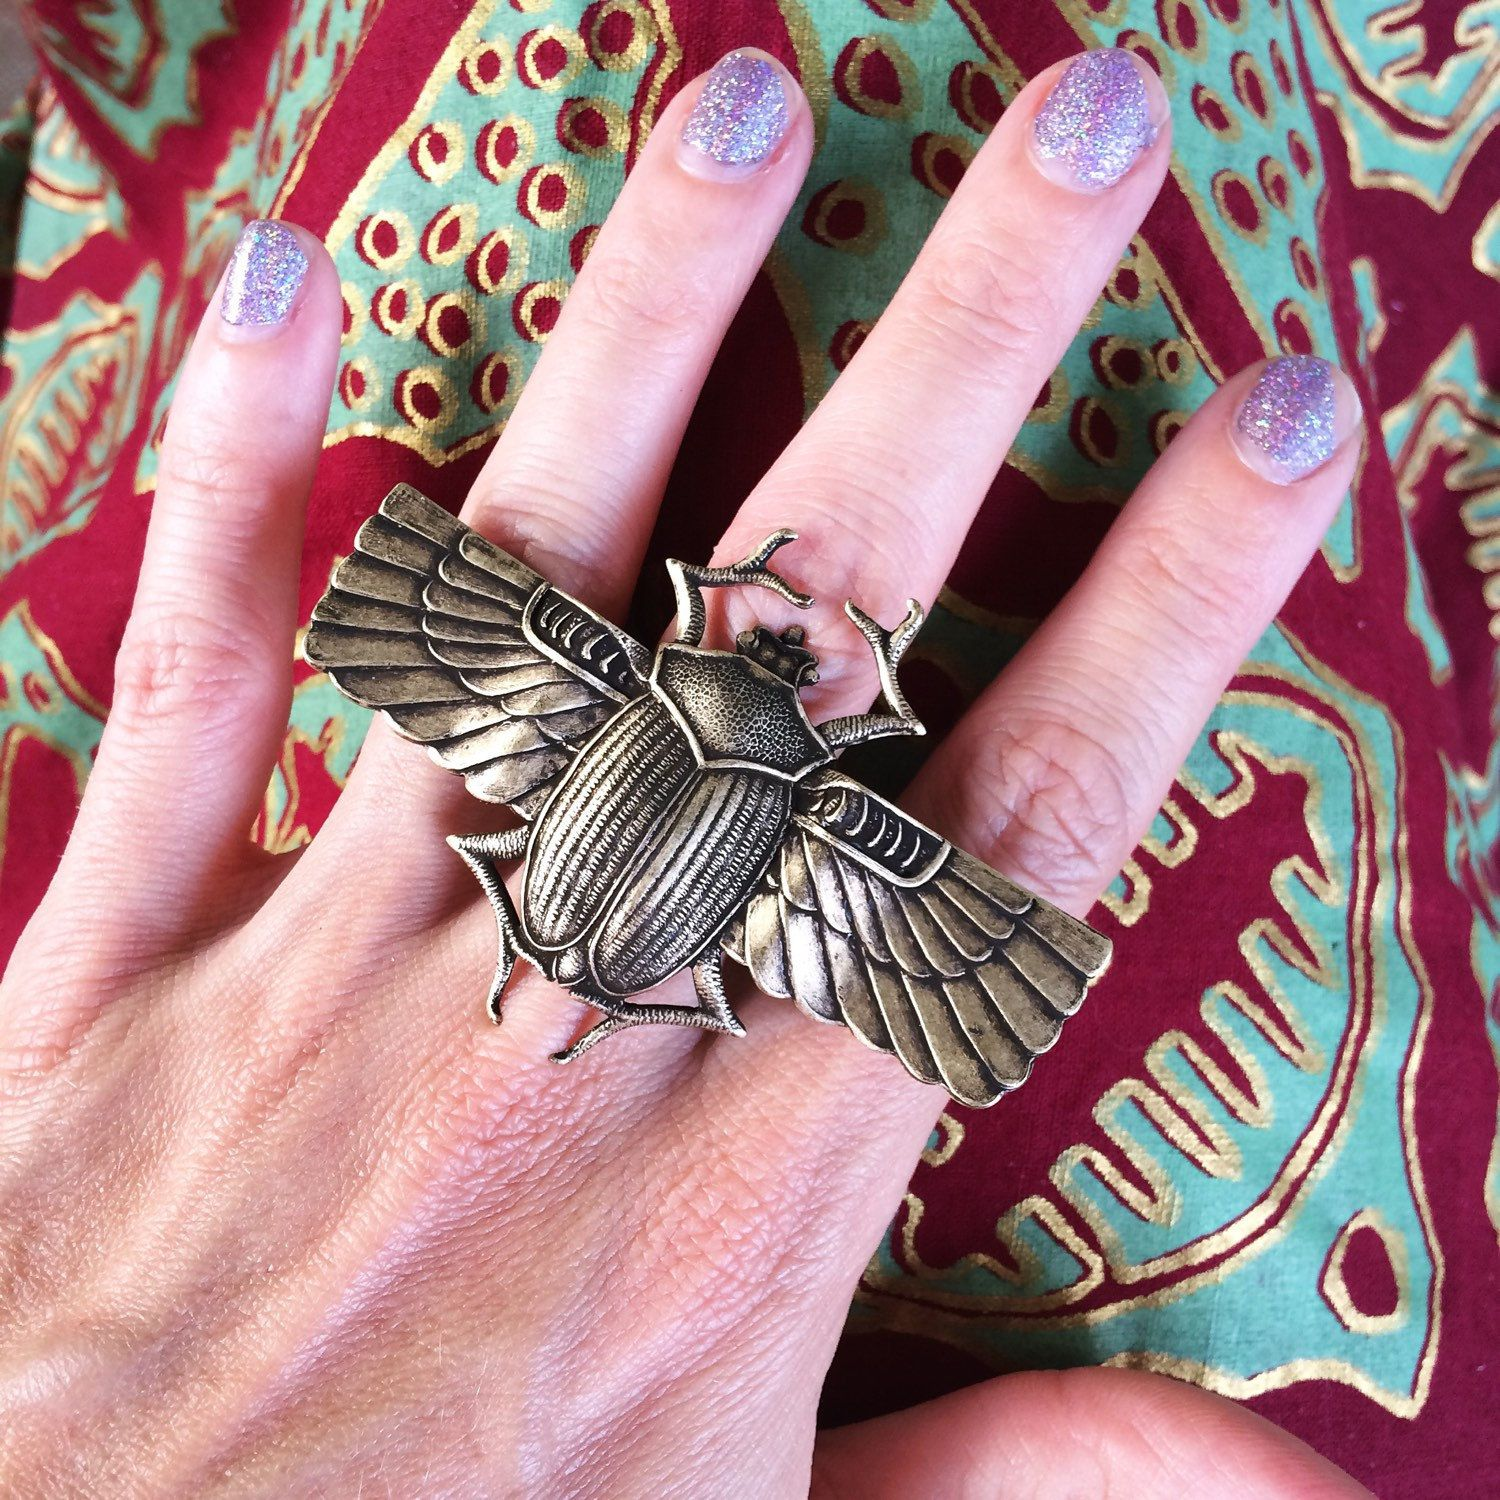 Giant vintage style scarab ring, now available online and at hey tiger in Louisville, KY.        . . . . . #hellostranger #handmade #handmadering #handmadejewelry #jewelryforsale #etsy #etsyshop #etsyseller #etsyjewelry #ring #steampunk #statementaccessories #accessories #handmadeaccessory #onlineshop #girlboss #entrepreneur #selfemployed #jewelrymaker #livethelifeyoulove #beetle #spiritanimal #symbology #makersgonnamake #justlisted #supporthandmade #handmadewithlove